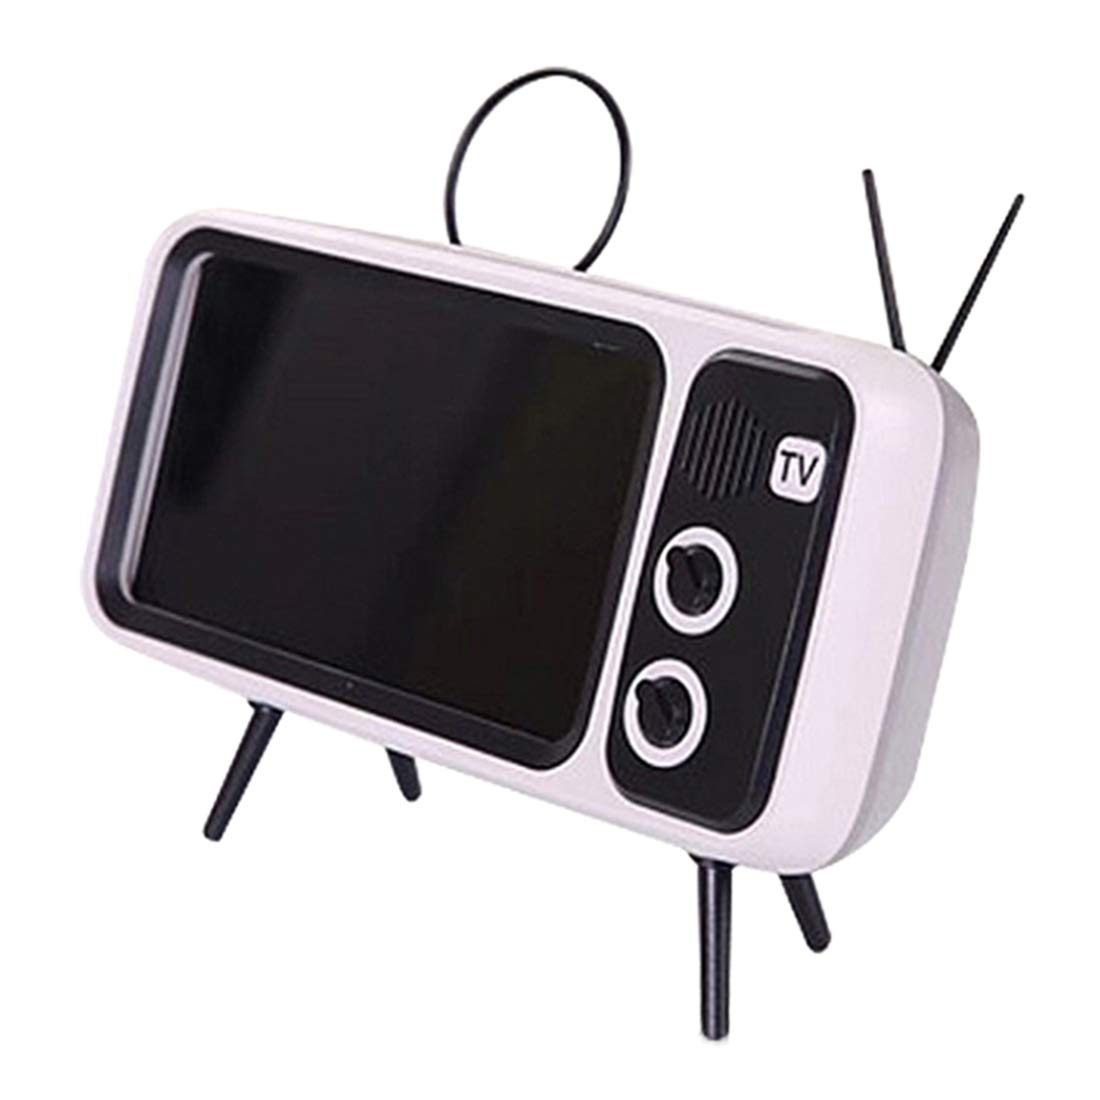 Table Cell Phone Accessories Silver Grey Goshfun PTH800 Retro TV Bluetooth Wireless Speaker Phone Holder Desktop Mobile Phone Stand for Phones with 4.7-5.5 inch Screen